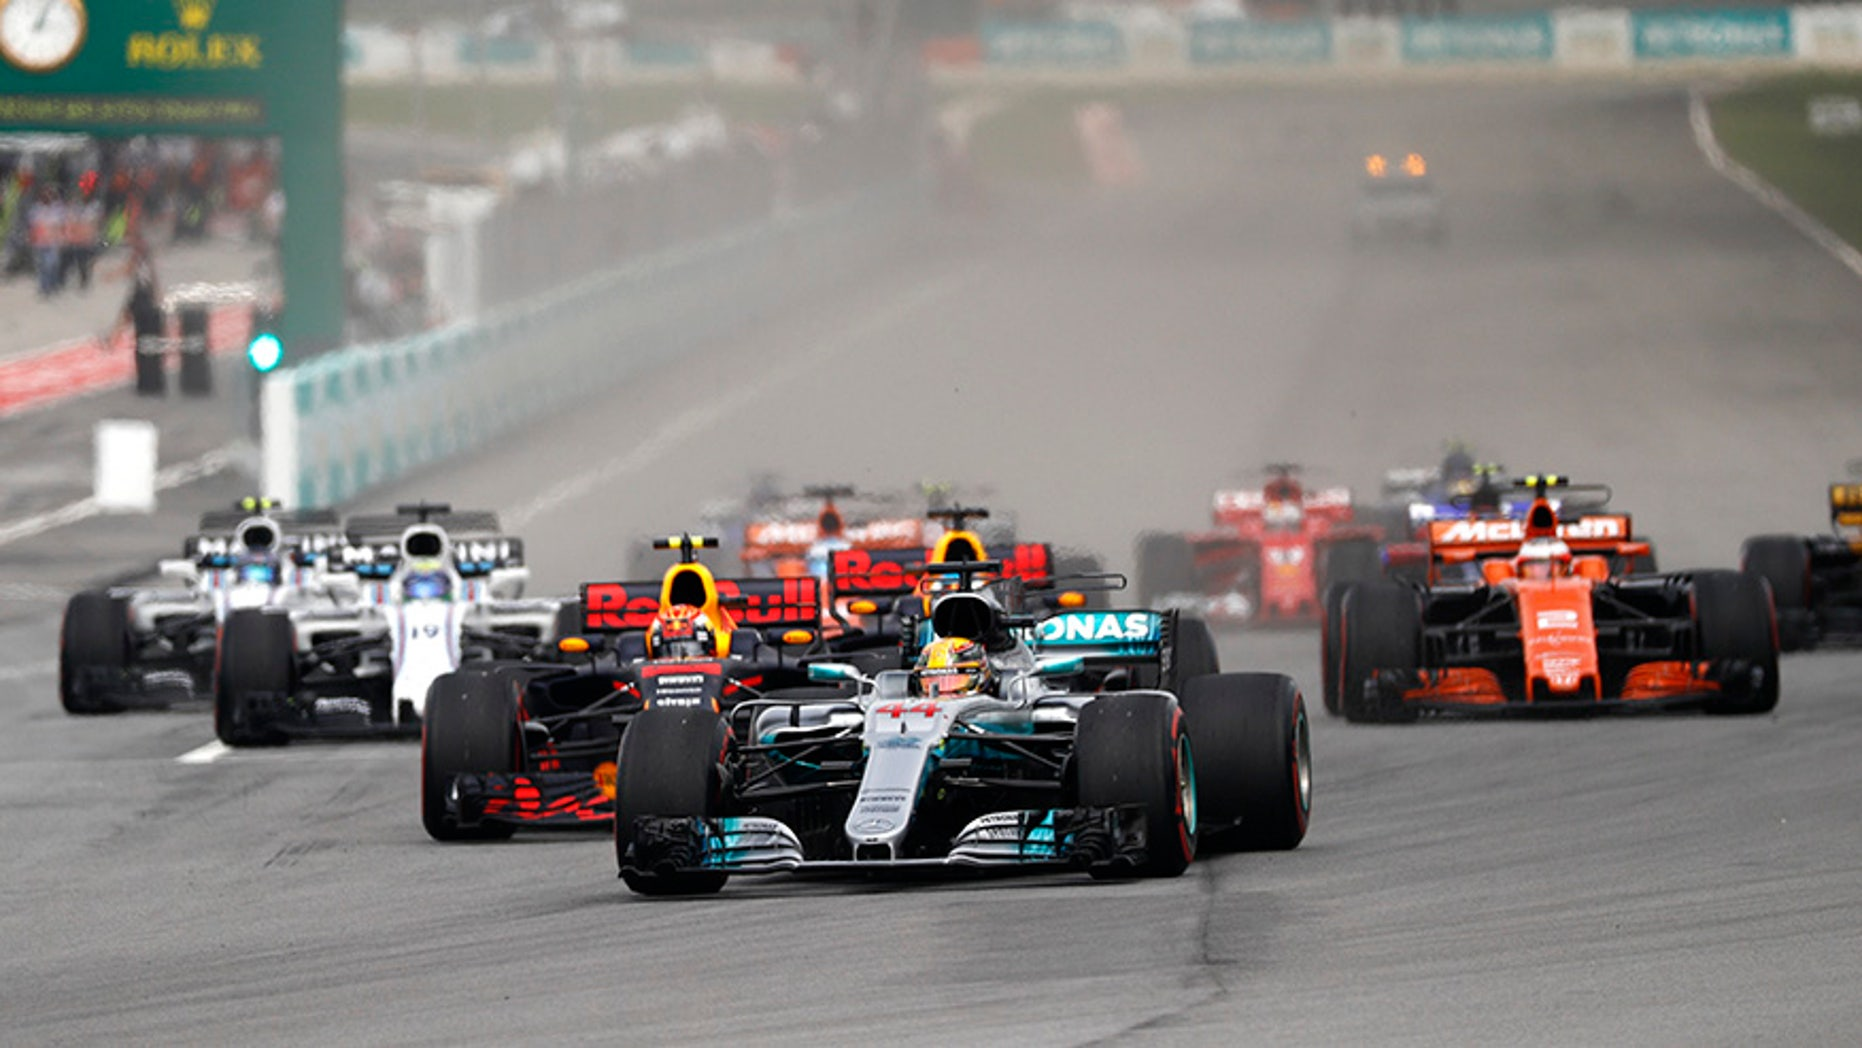 Lewis Hamilton leads the field at the Malaysian Formula One Grand Prix